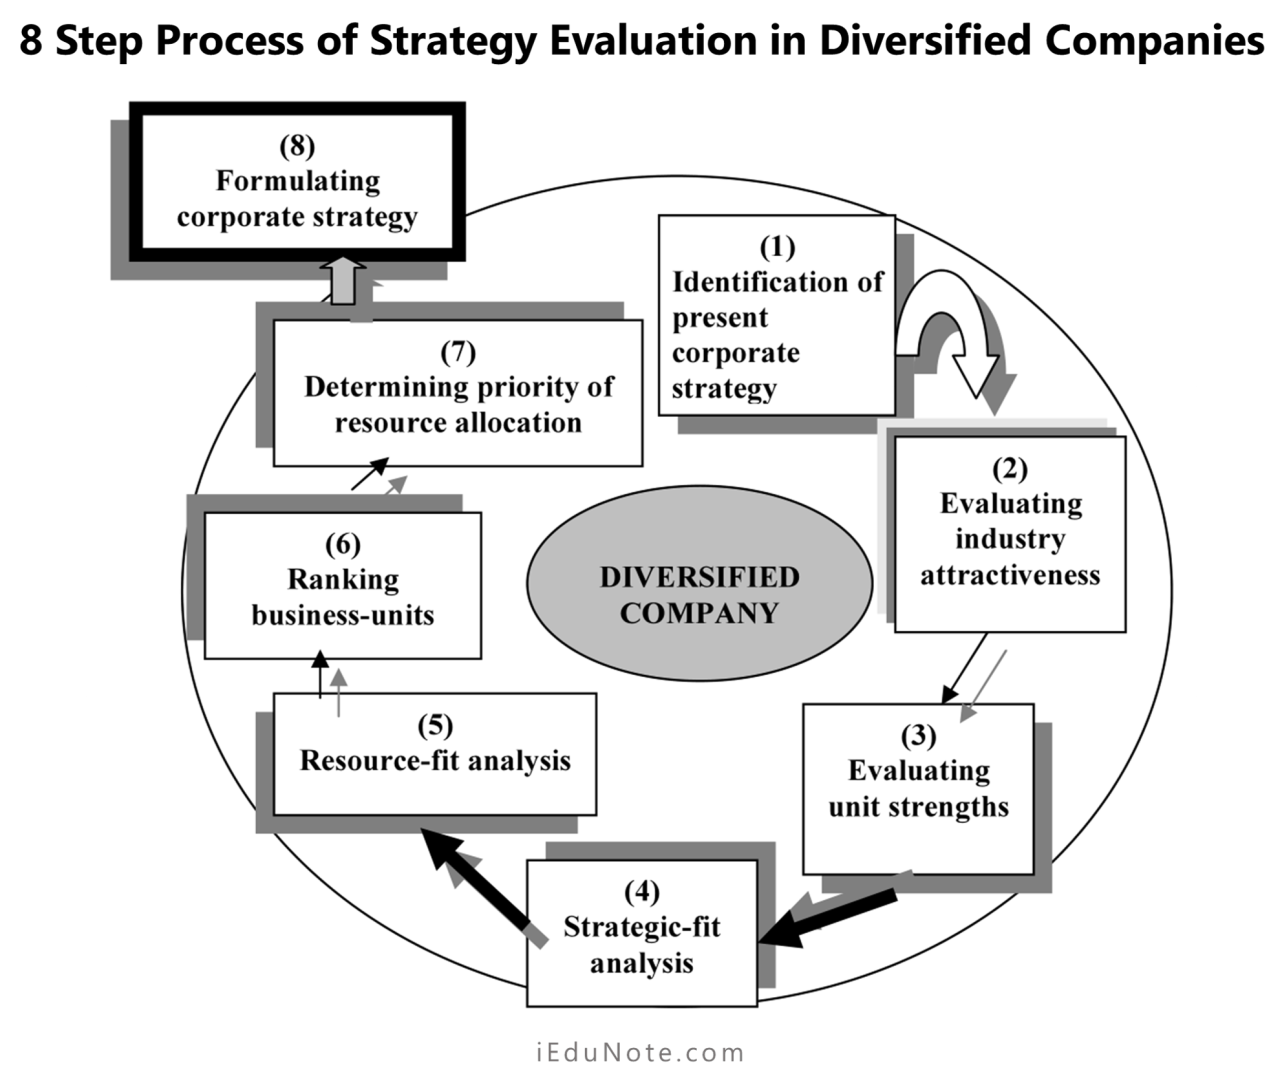 Evaluating Strategies of Diversified Companies in 8 Steps